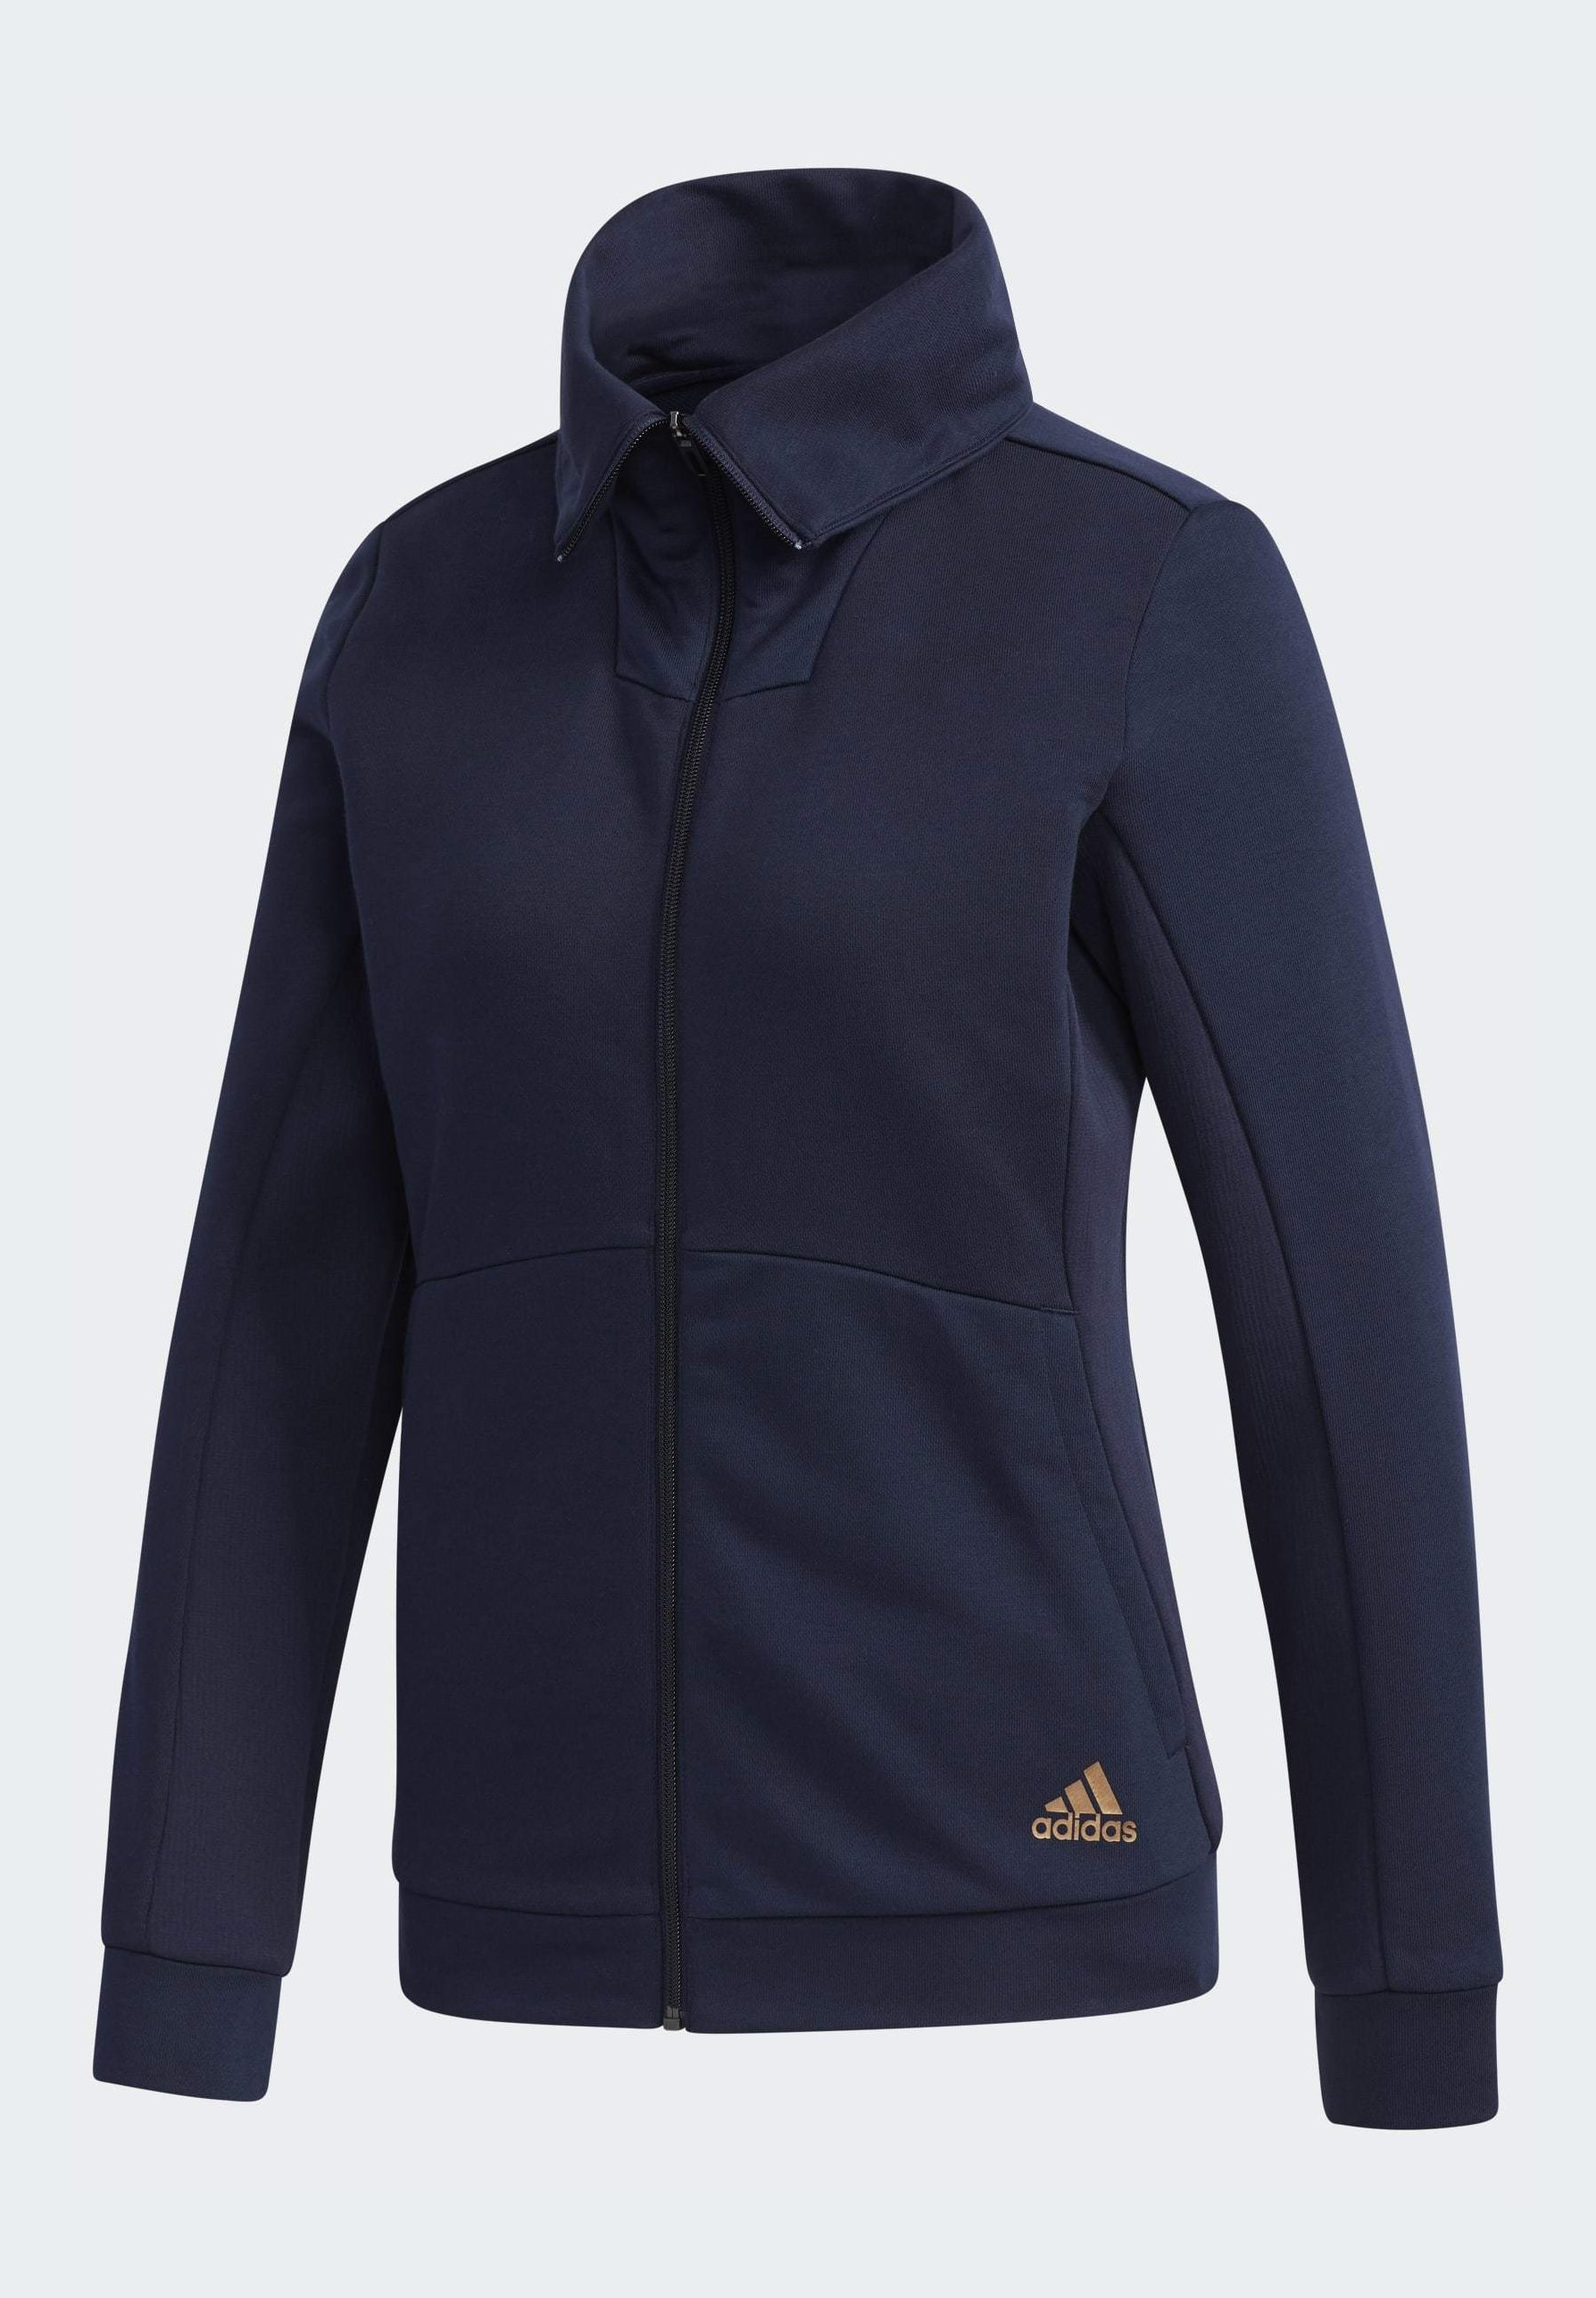 adidas Performance ADIDAS U4U FULL ZIP TRACK TOP